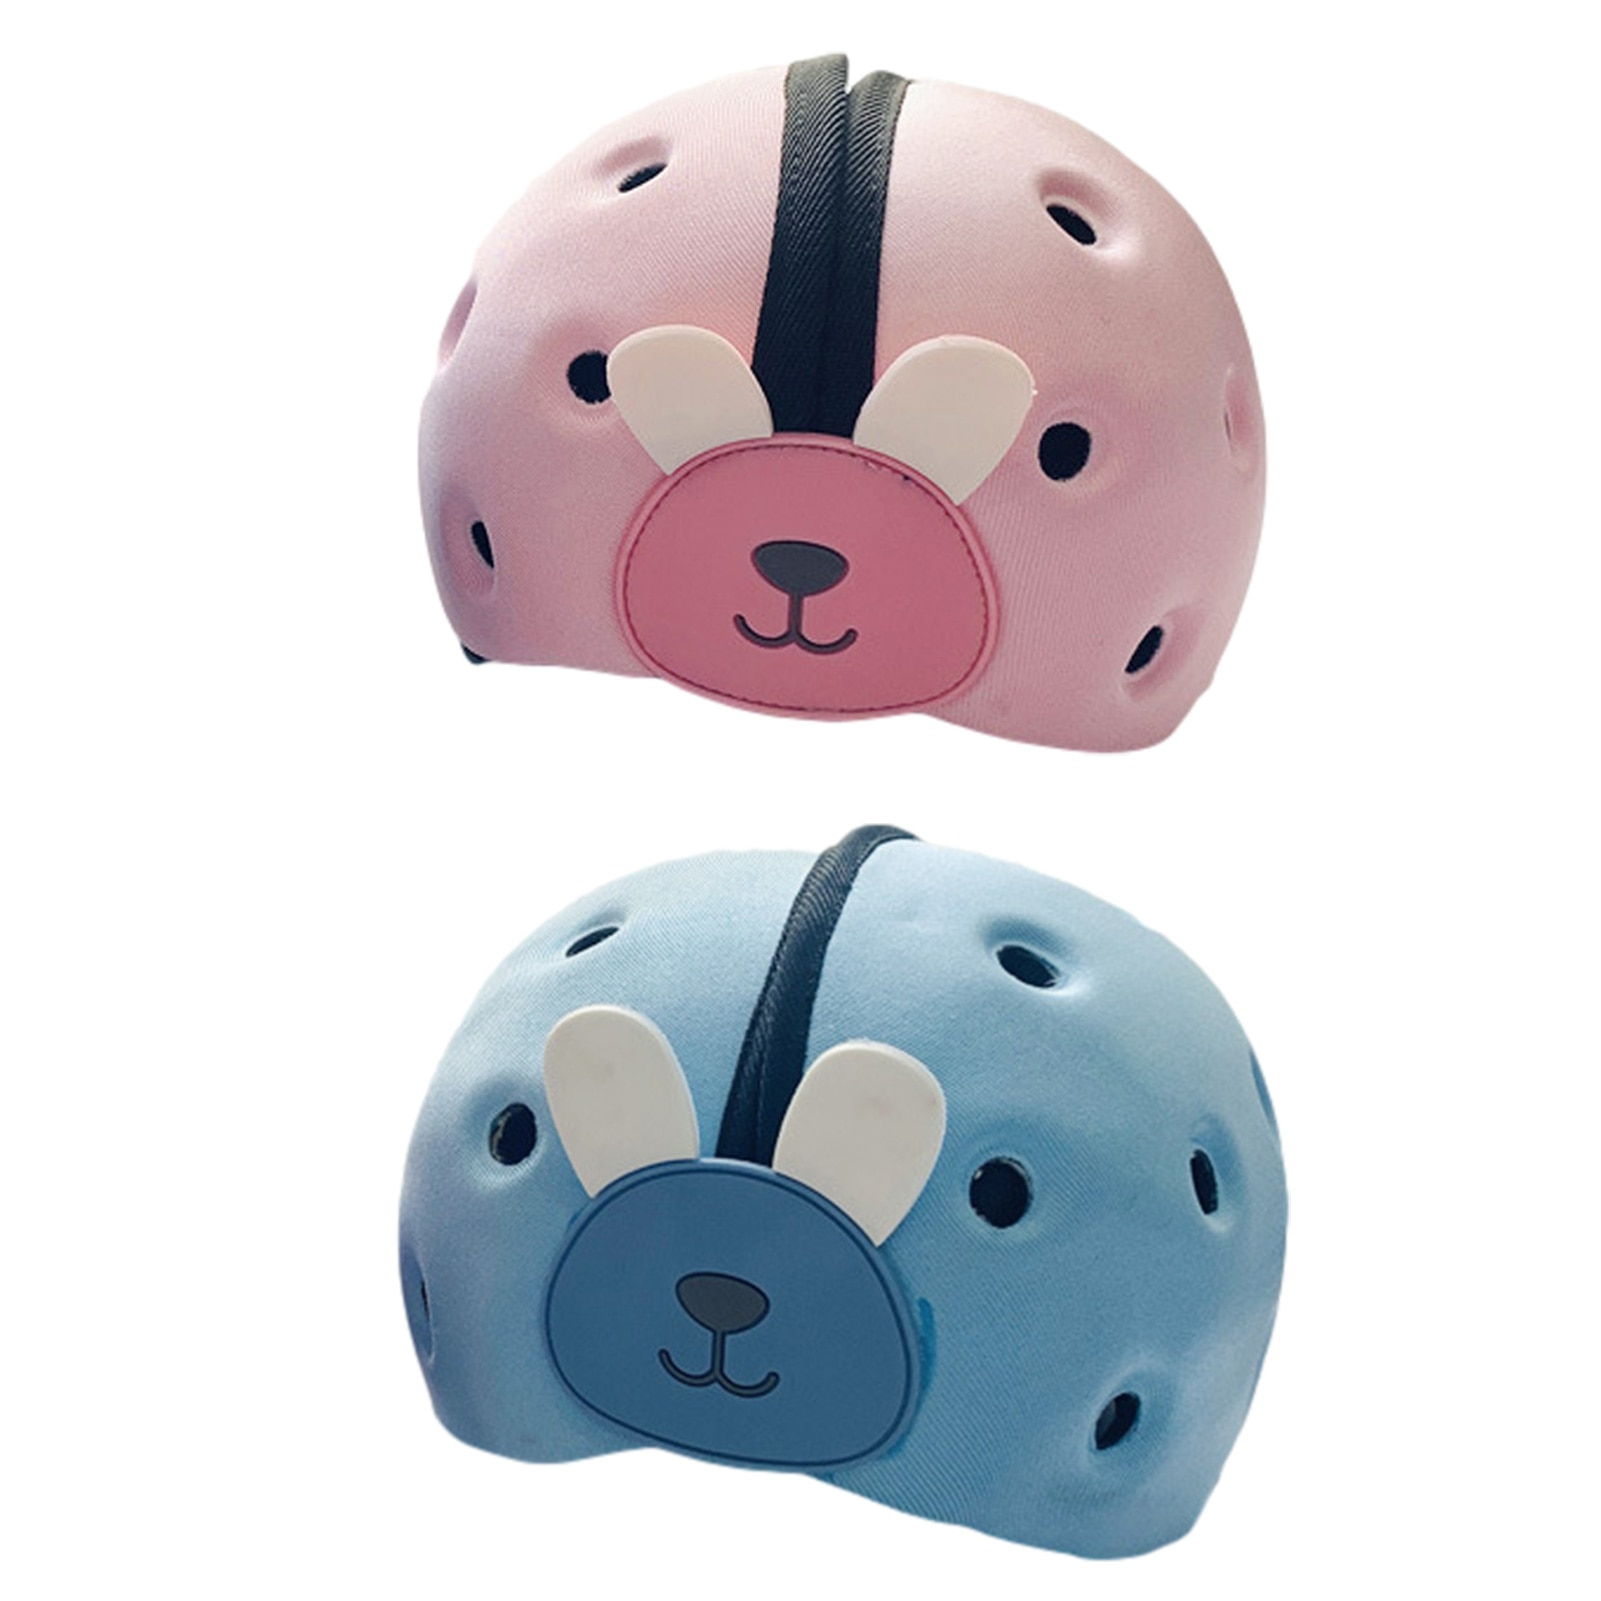 Infant Safety Helmet For Babies Protective Anti-shock Baby Hat Toddler Learning To Walk Anti-bump Headguard Protector